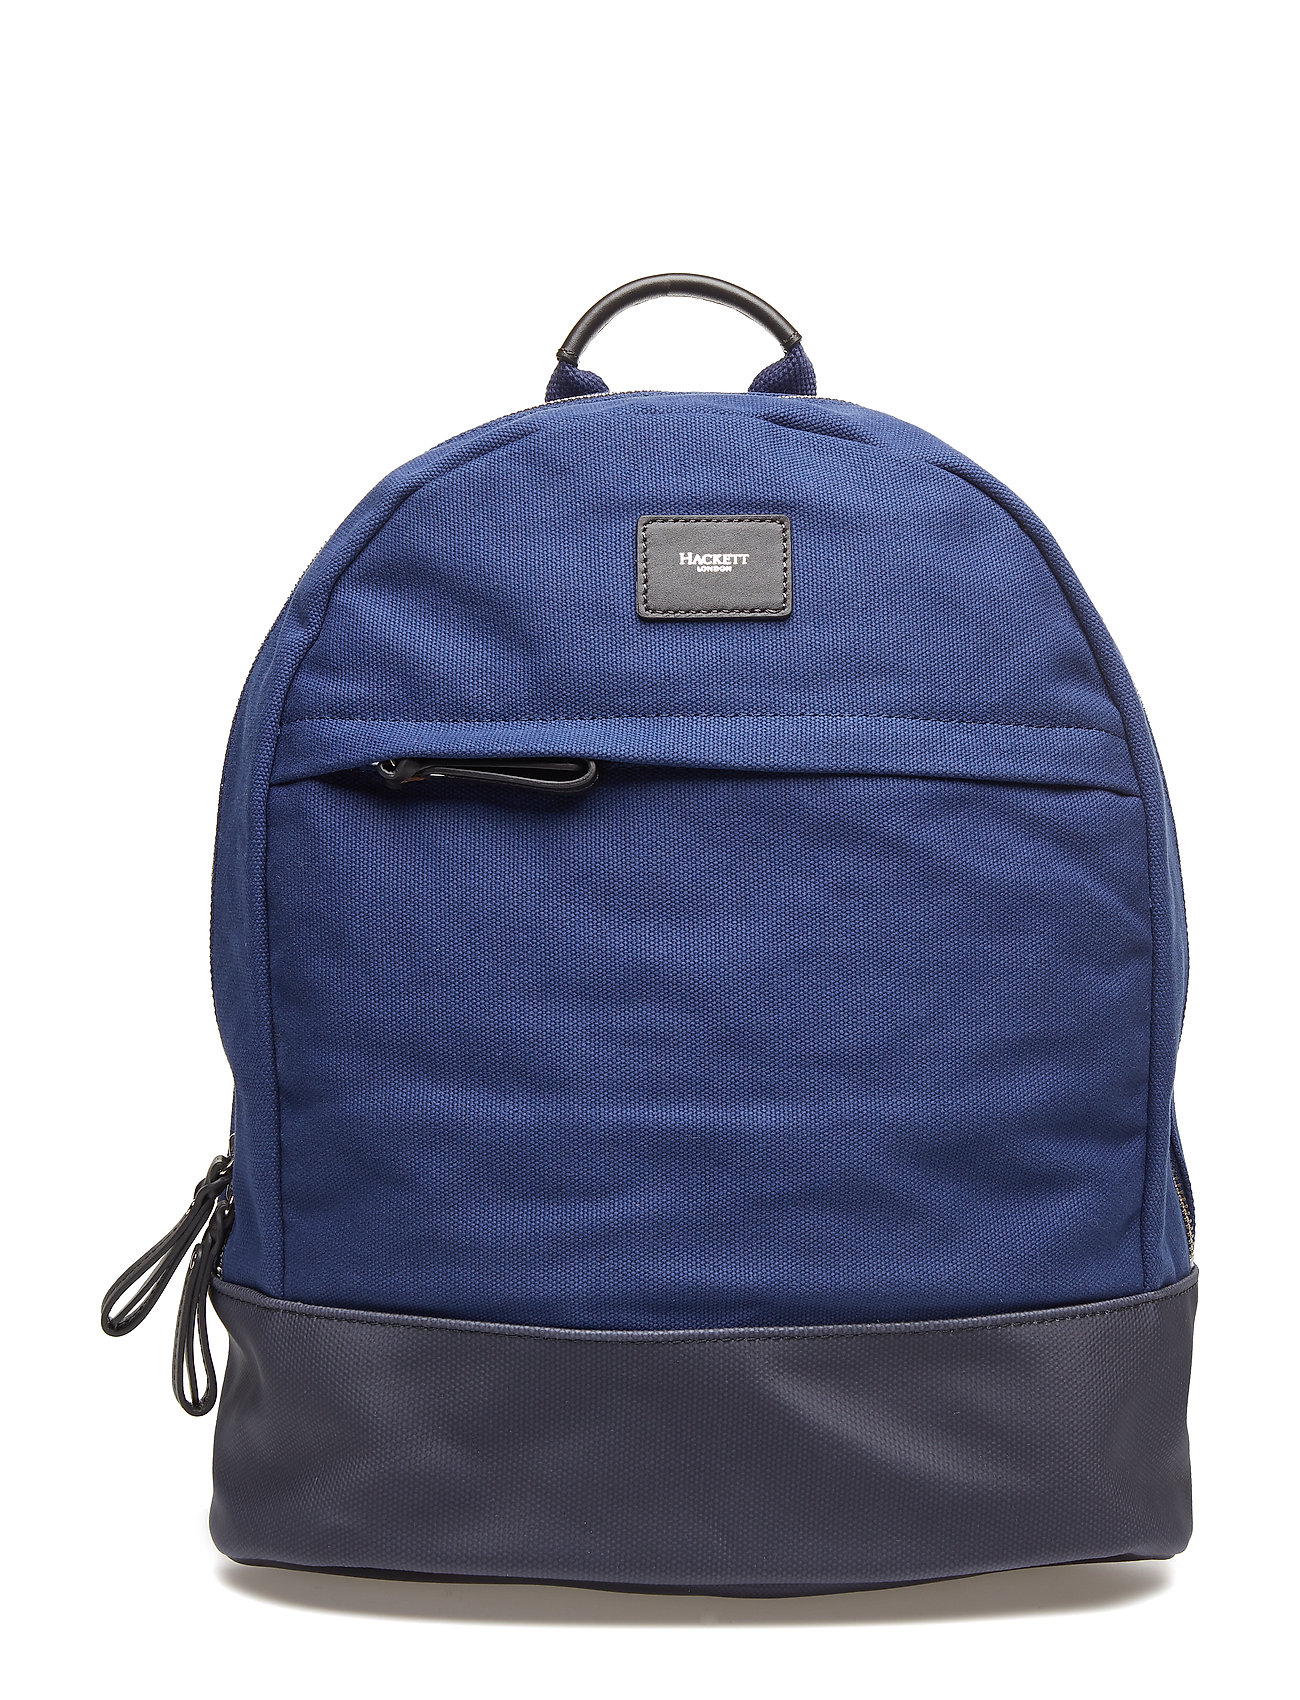 Hackett NEW JACKSON BACKPACK - 595NAVY